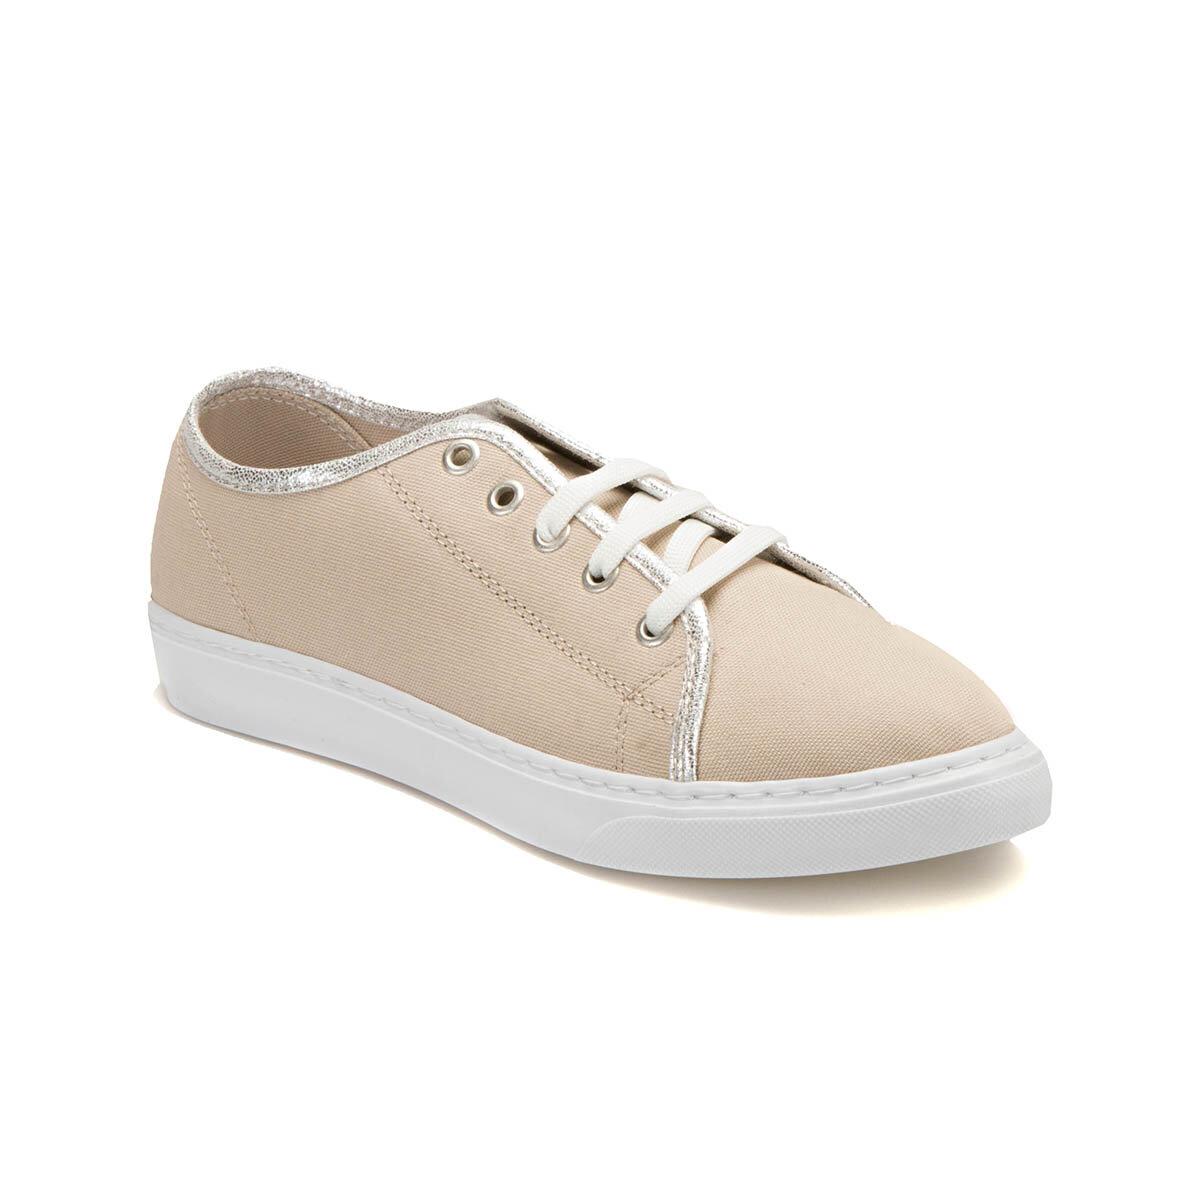 FLO U1503 Z Beige Women 'S Sneaker Shoes Art Bella